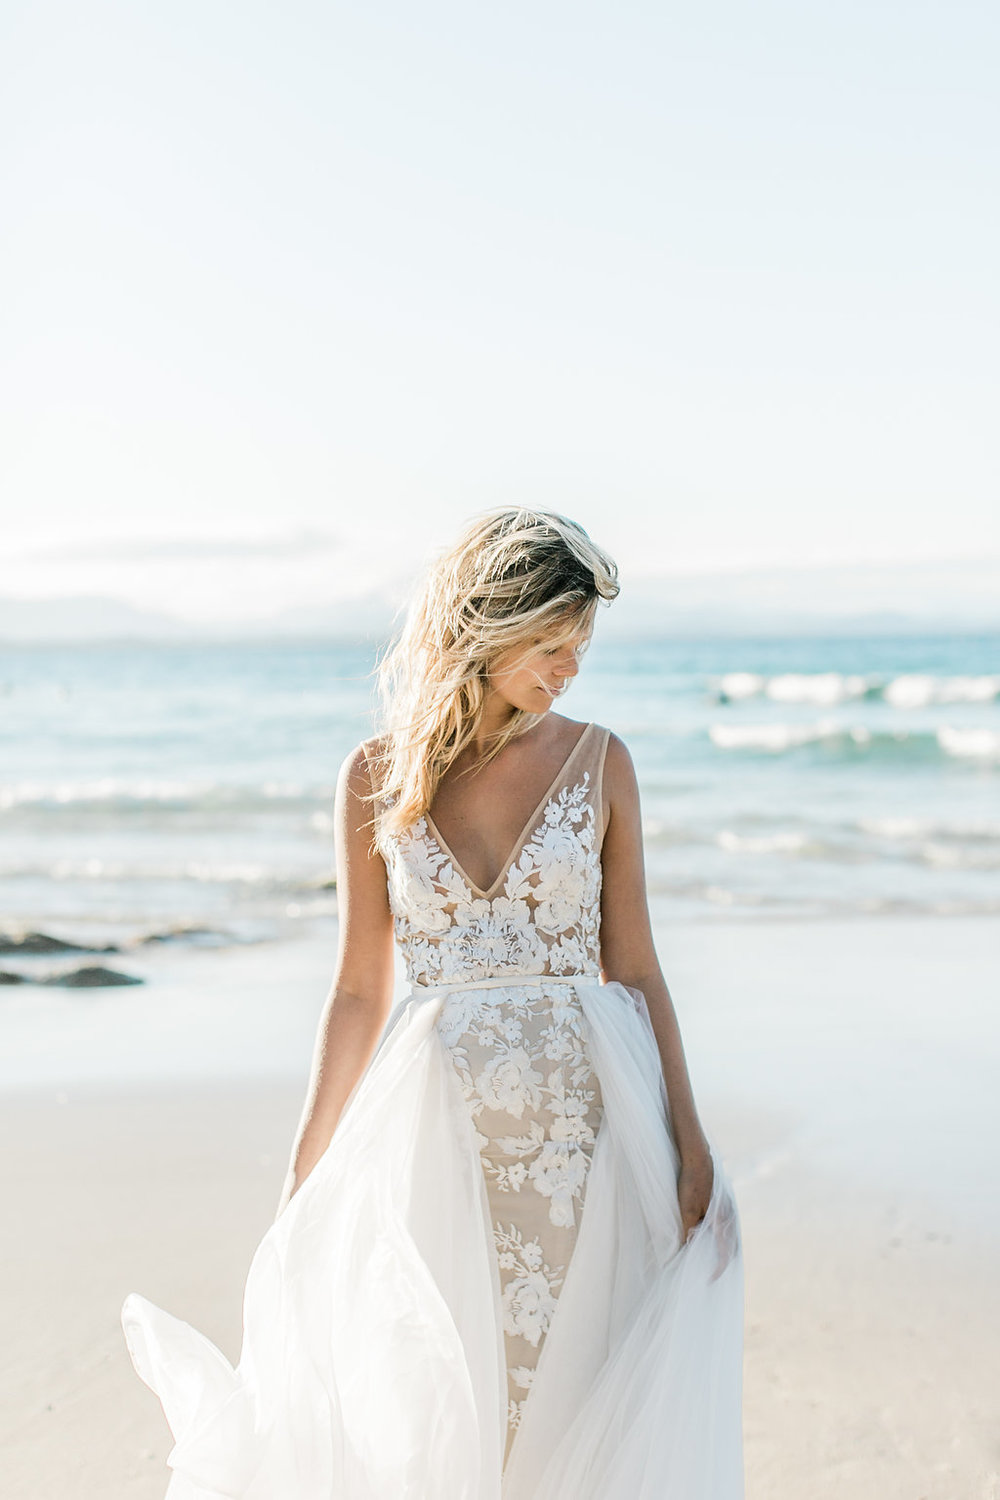 The 'Stevie' Wedding Dress by Made With Love Bridal featured on LOVE FIND CO.